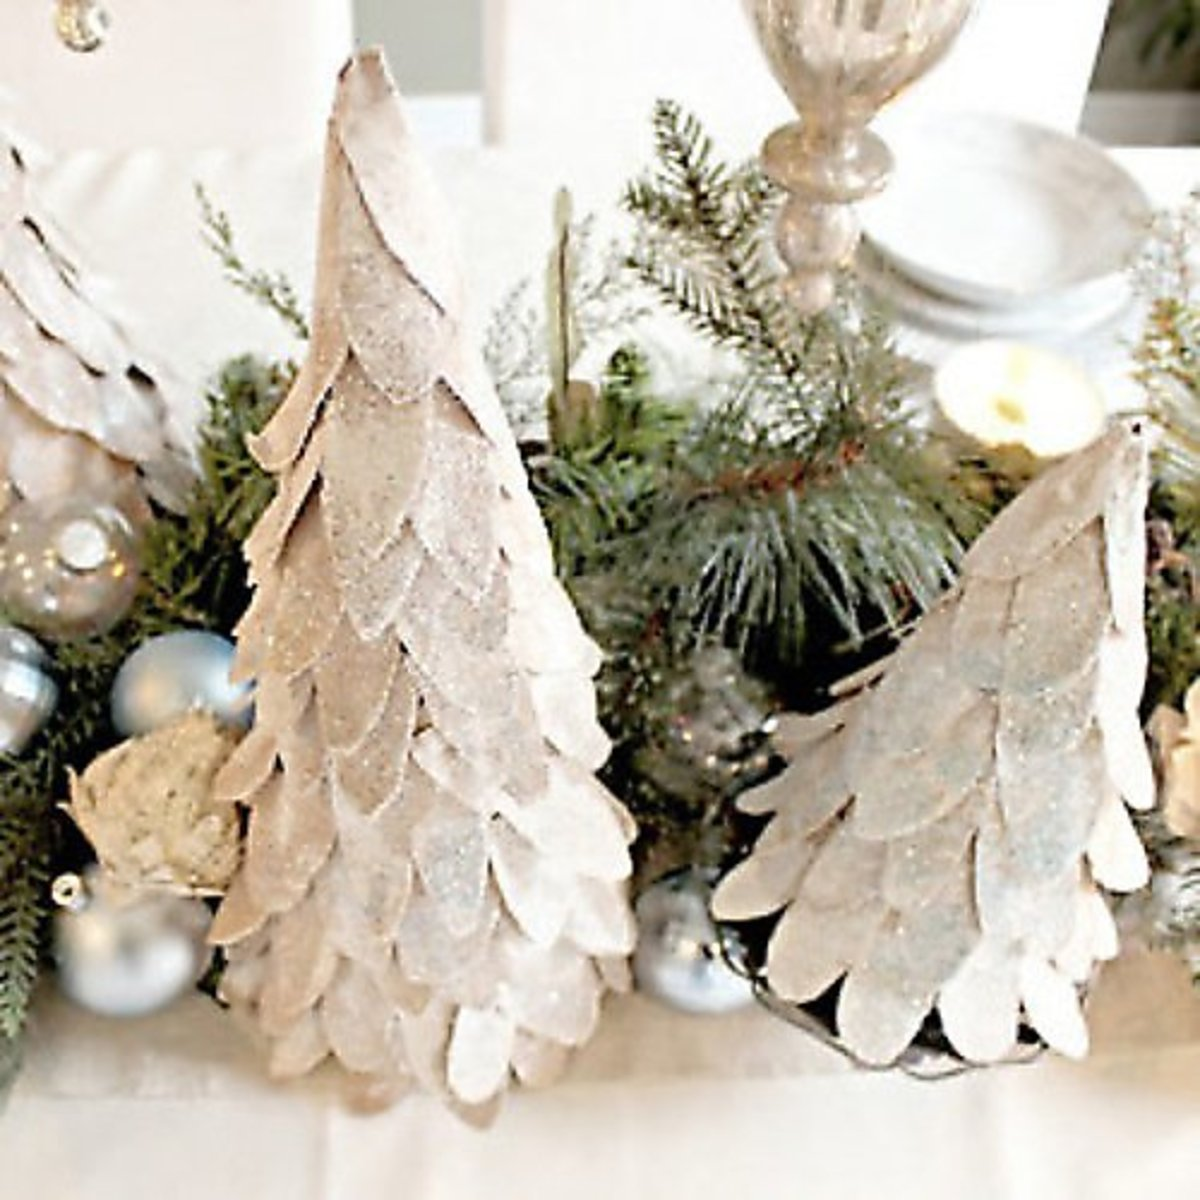 Tabletop Tree Ideas for Christmas Decorations